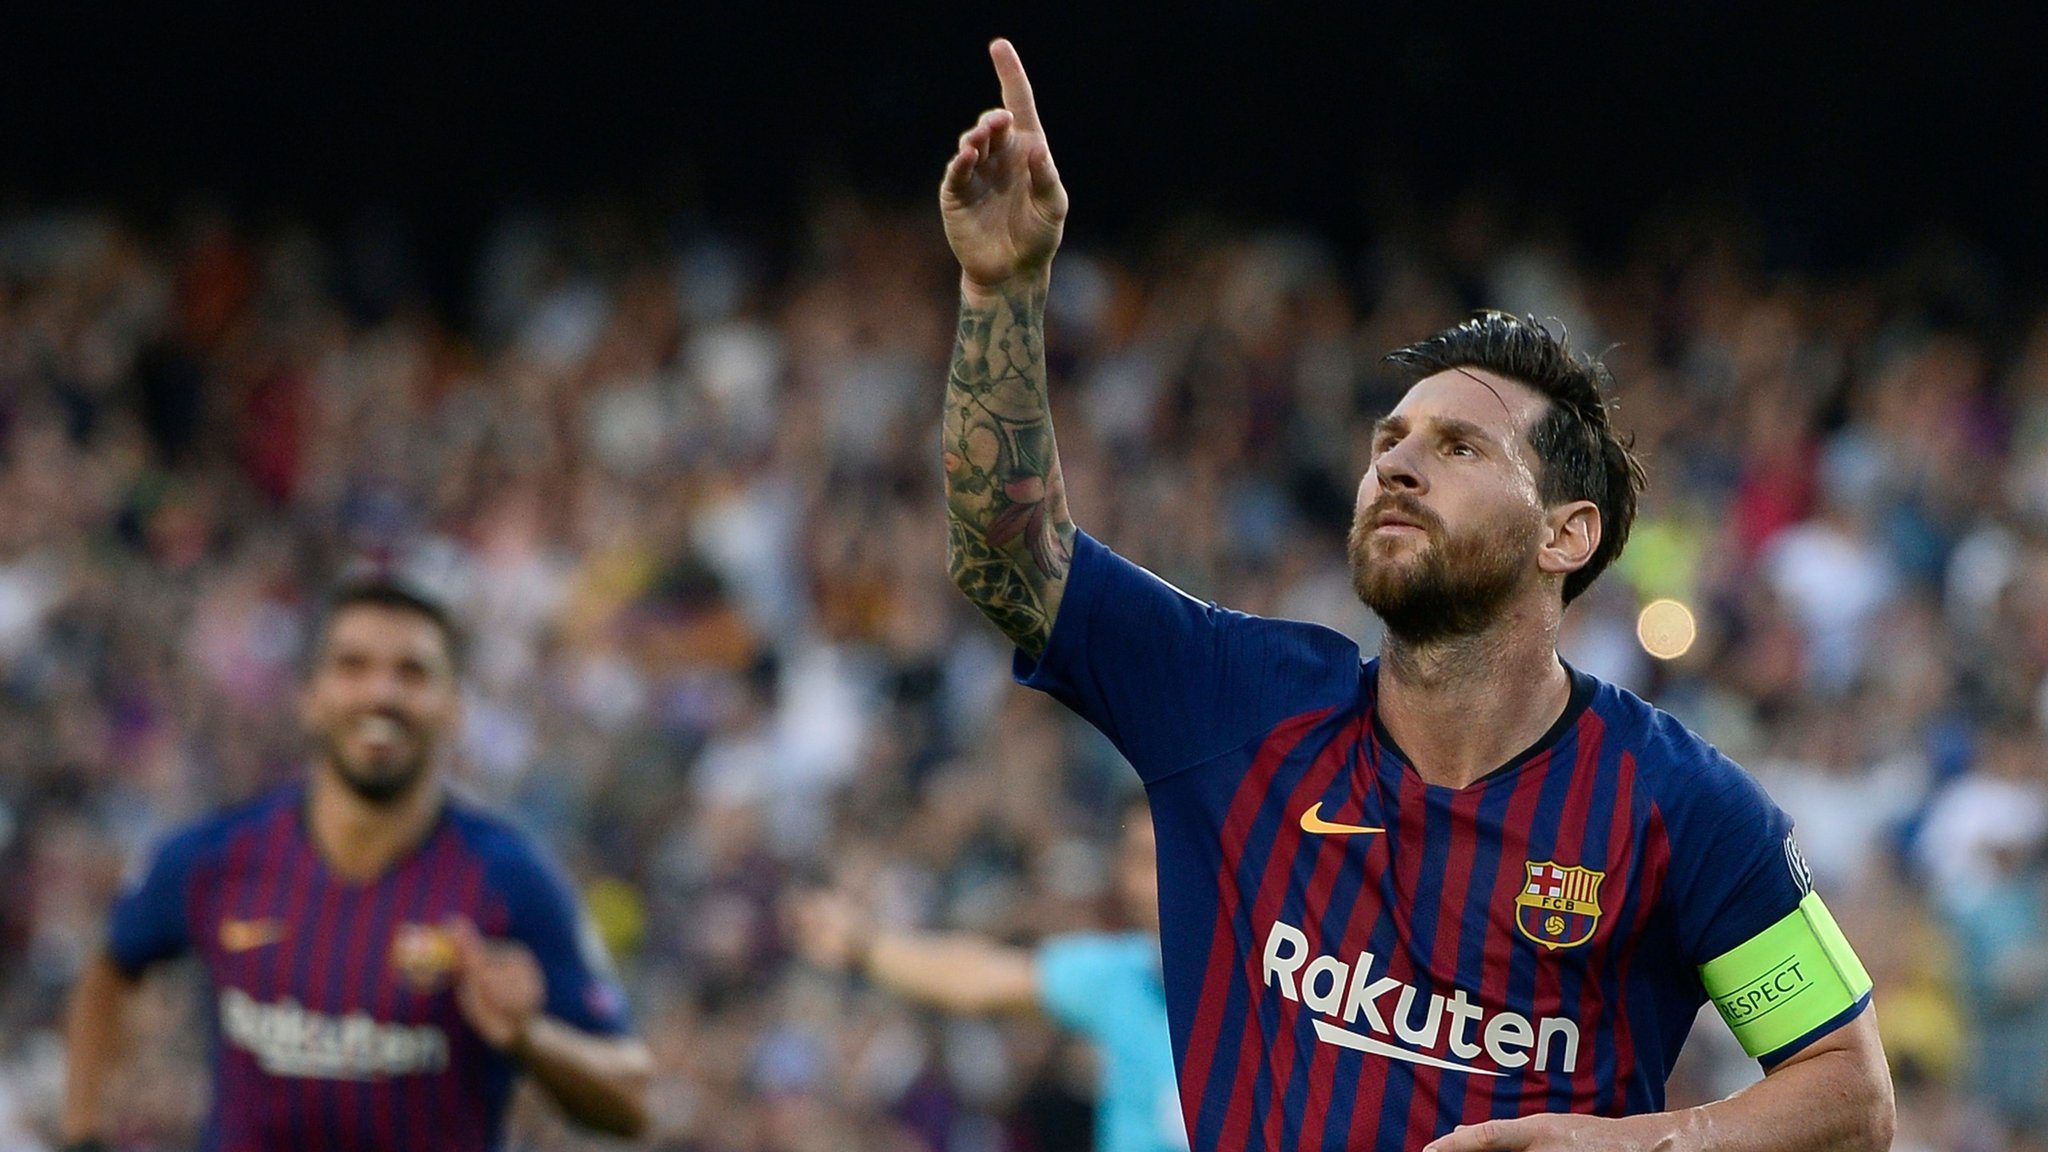 Barcelona 4-0 PSV Eindhoven: Lionel Messi scores hat-trick in Champions League win